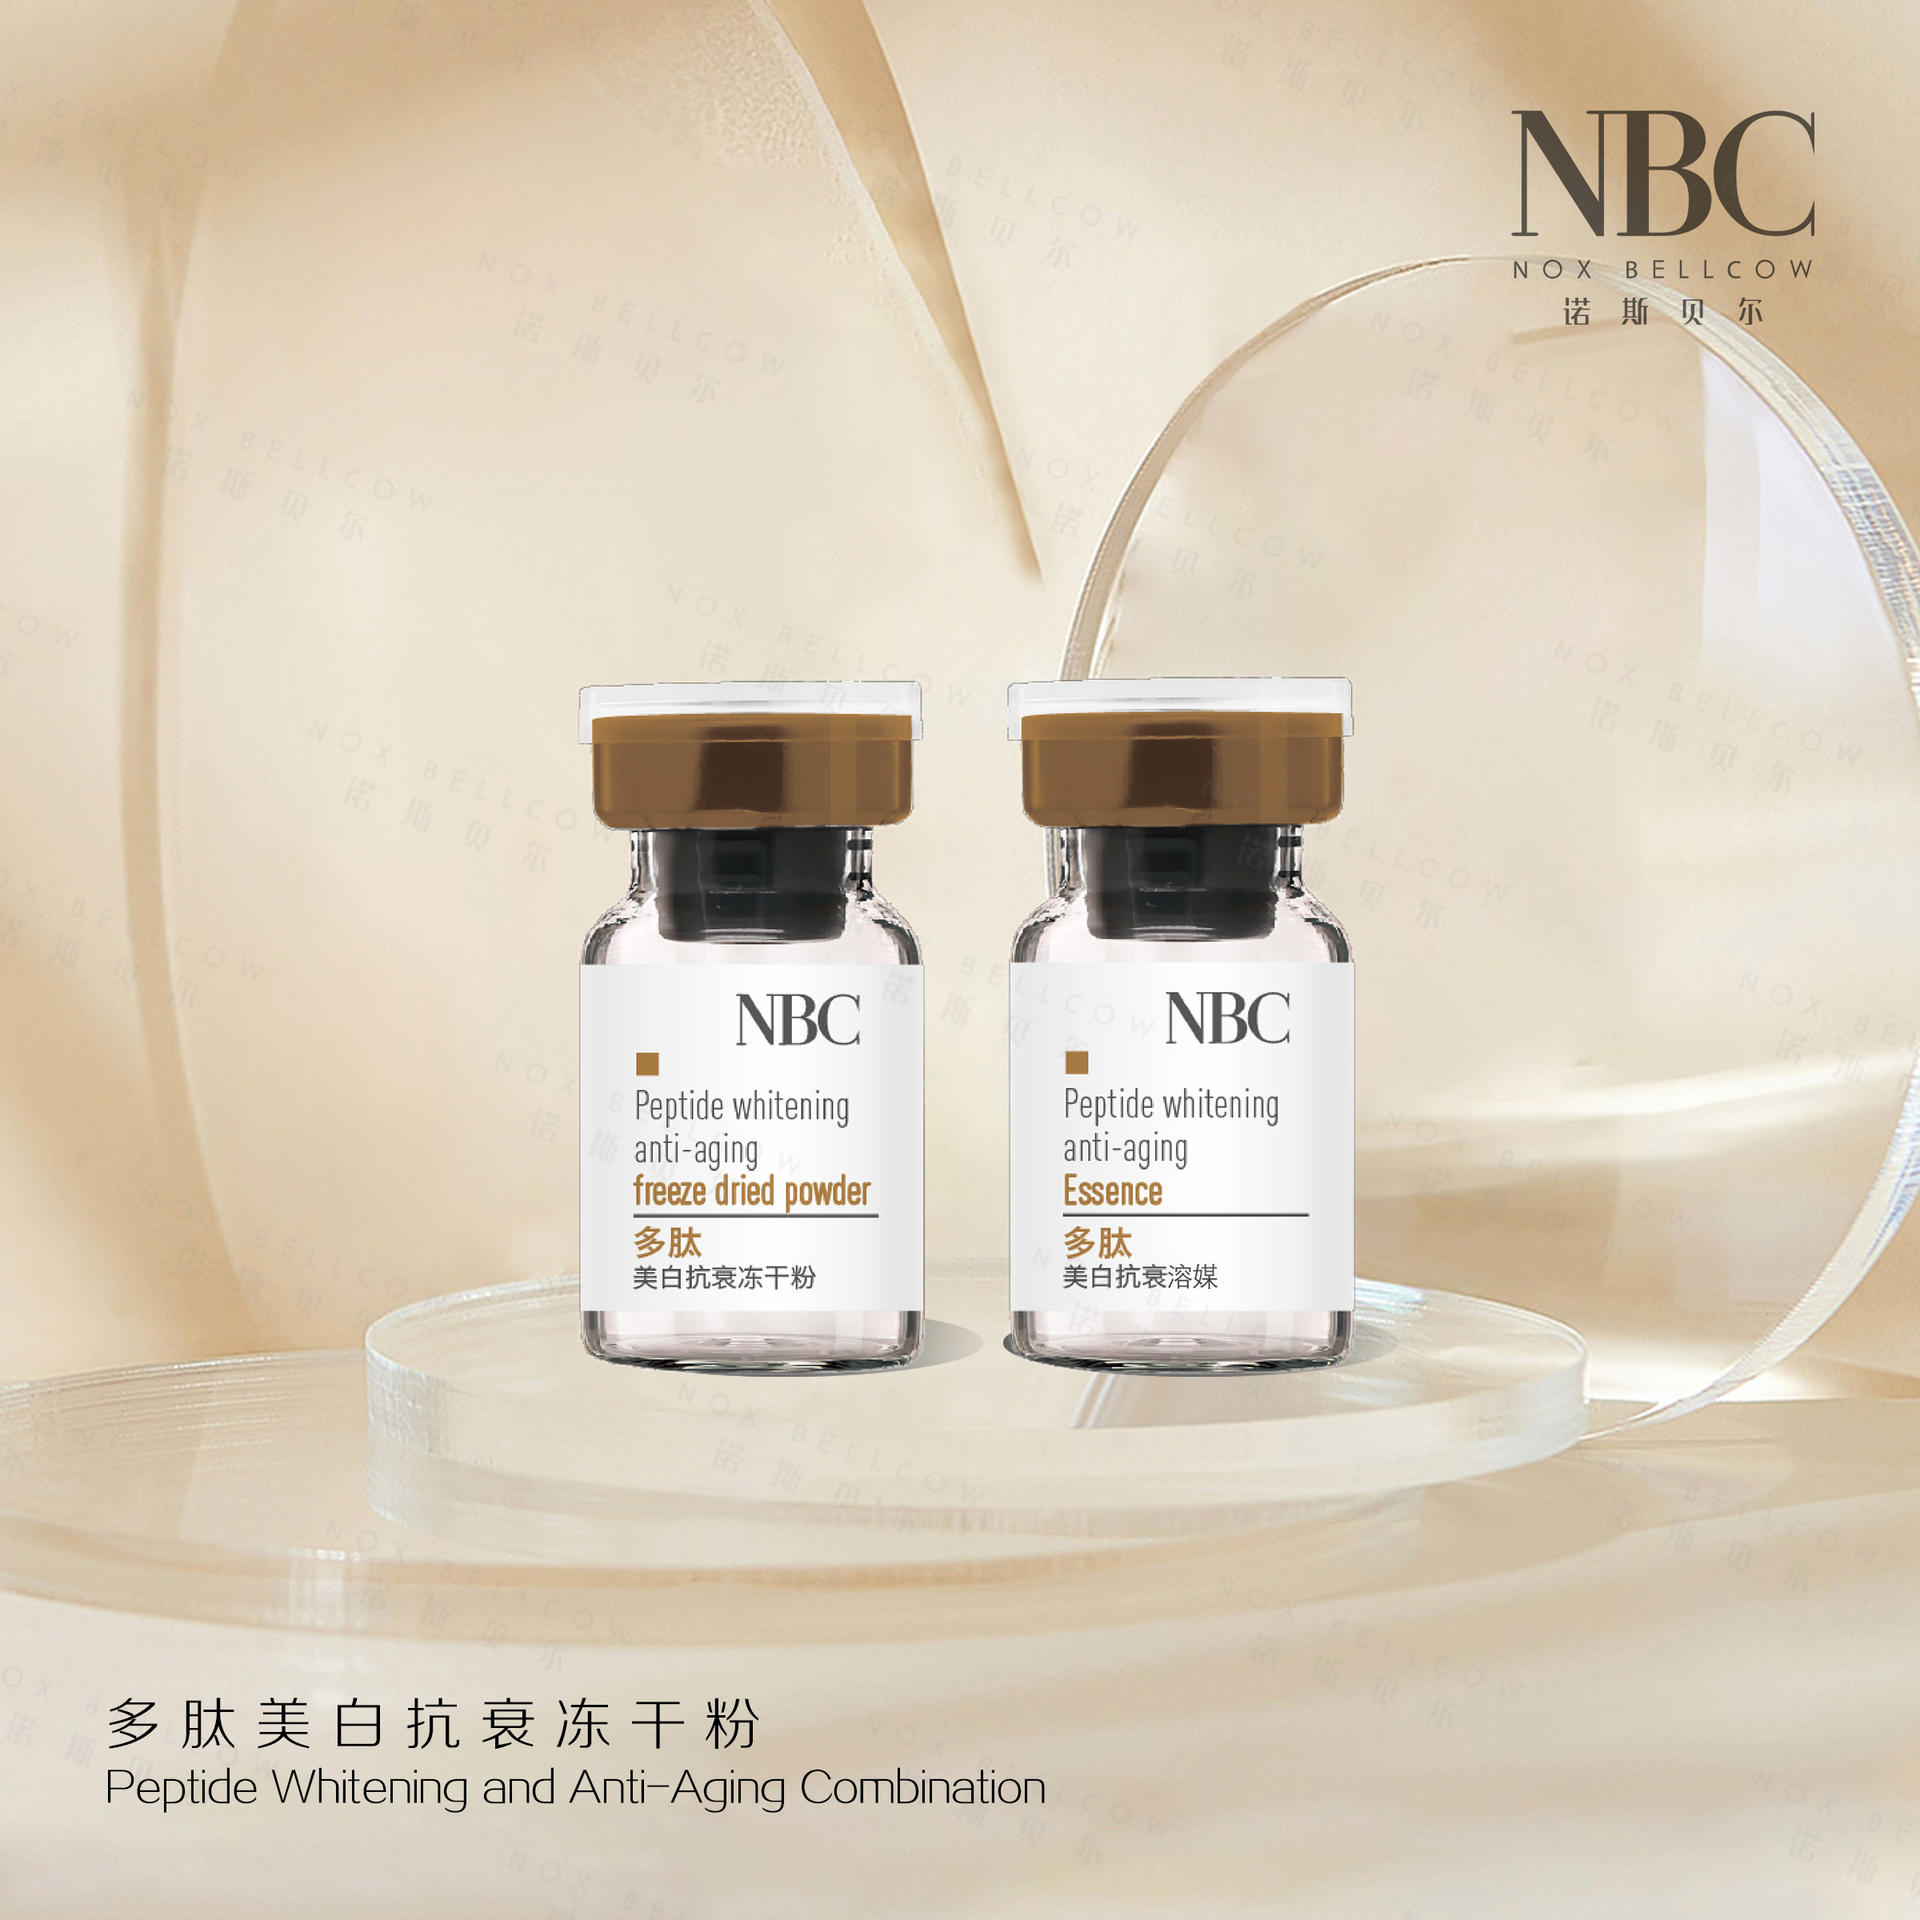 Peptide Whitening and Anti-Aging Combination